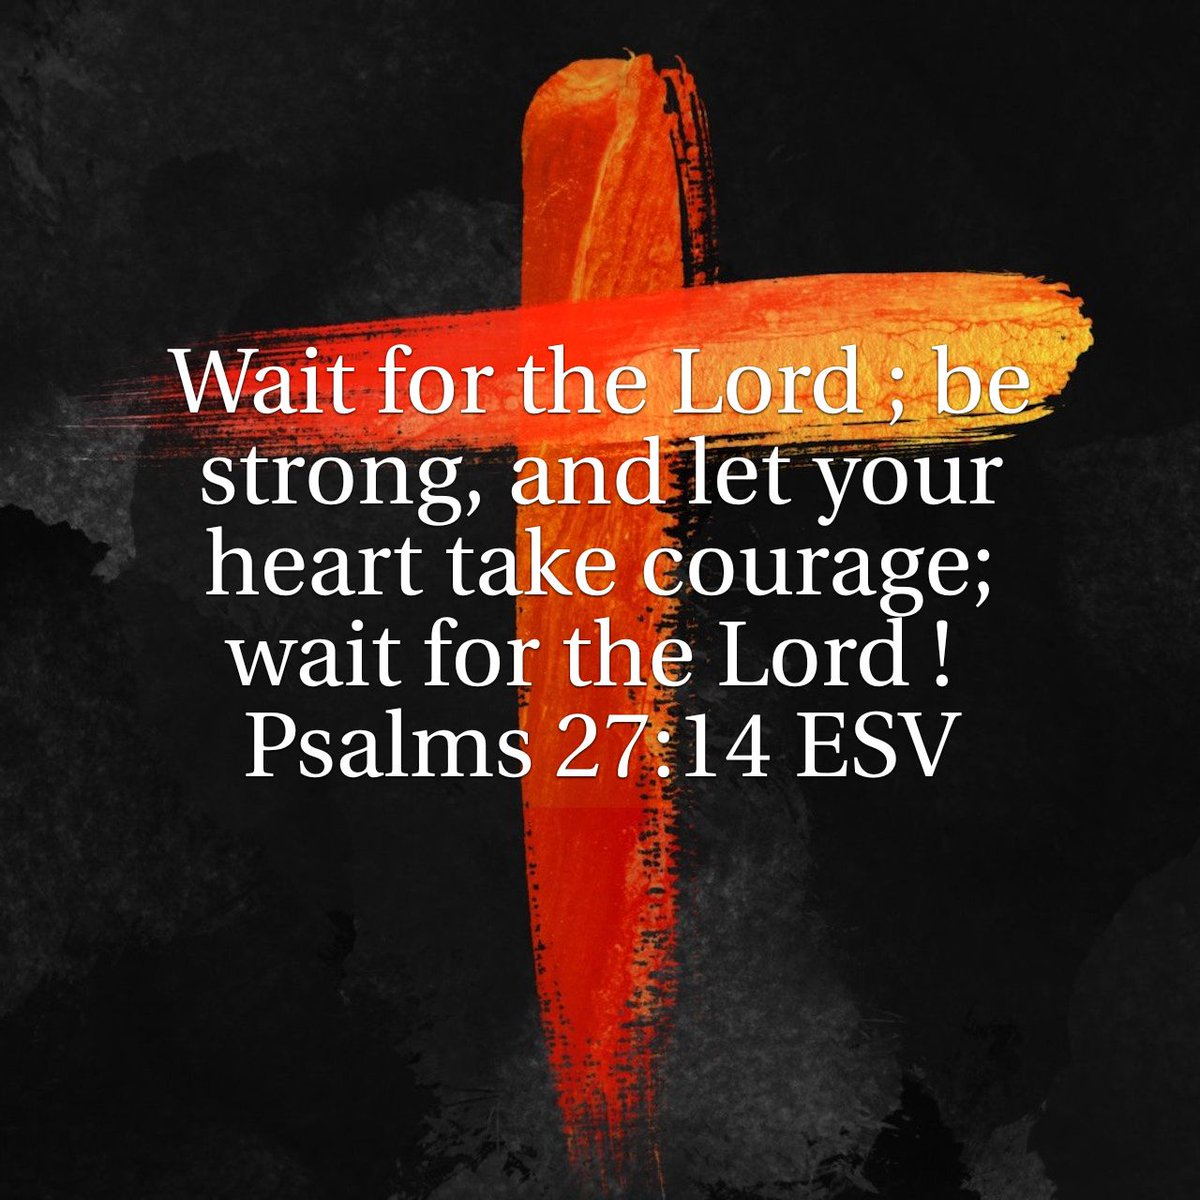 Wait for the Lord ; be strong, and let your heart take courage; wait for the Lord ! Psalms 27:14 … bible.com/bible/59/psa.2…